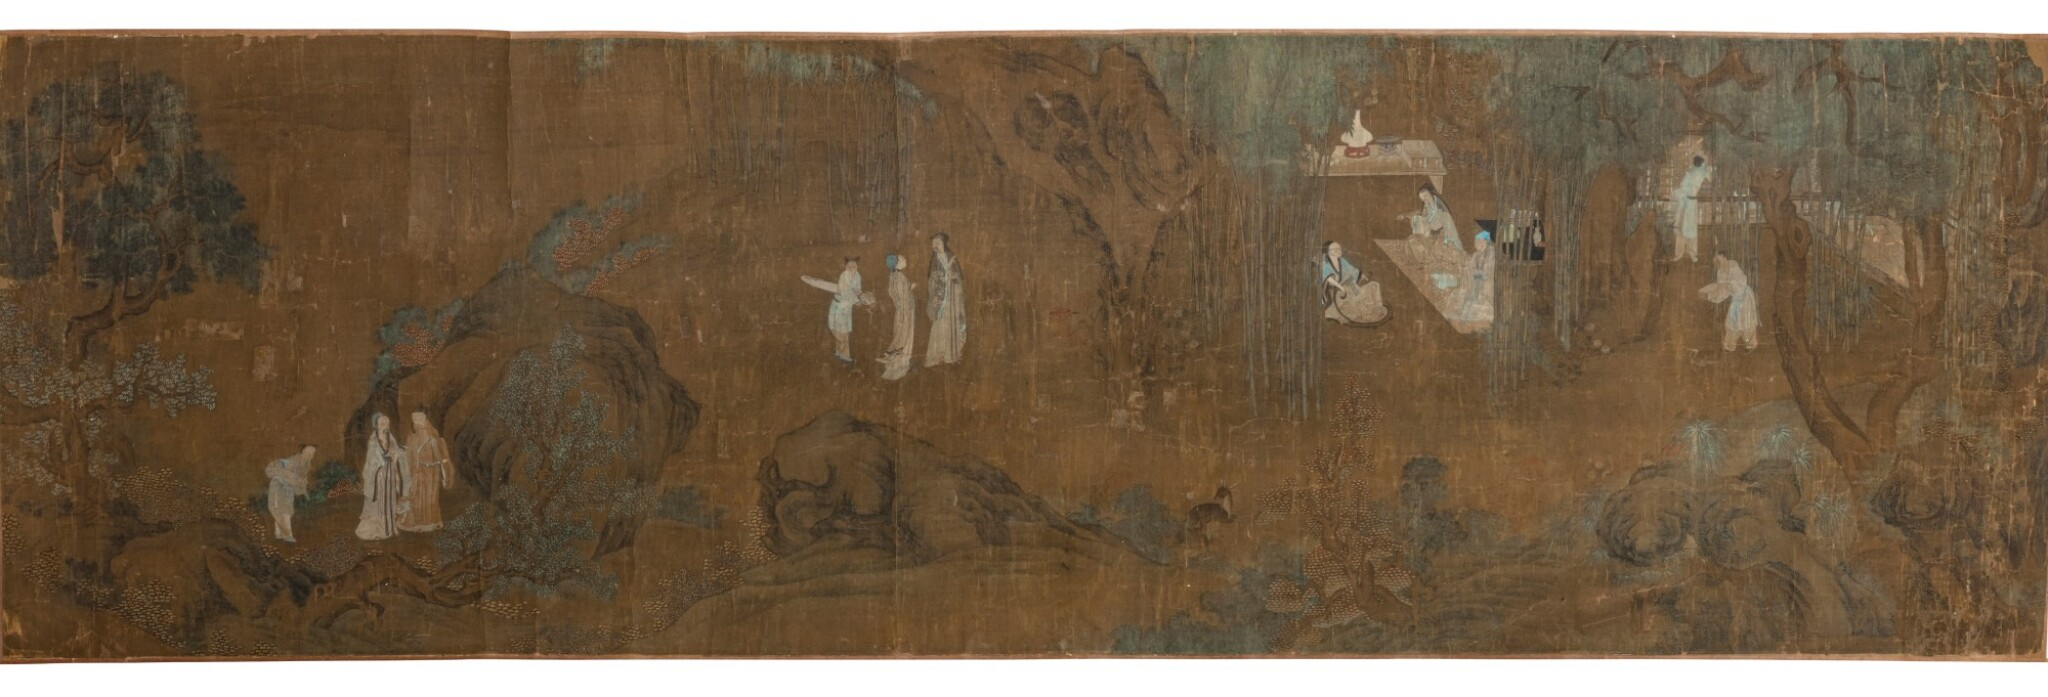 View 1 of Lot 93. Anonyme Les sept sages de la forêt de bambous Dynastie Qing, XVIIIE siècle | 清十八世紀 竹林七賢圖 | Anonymous, Seven Sages of the Bamboo Grove, ink and color on silk, handscroll, Qing Dynasty, 19th century.